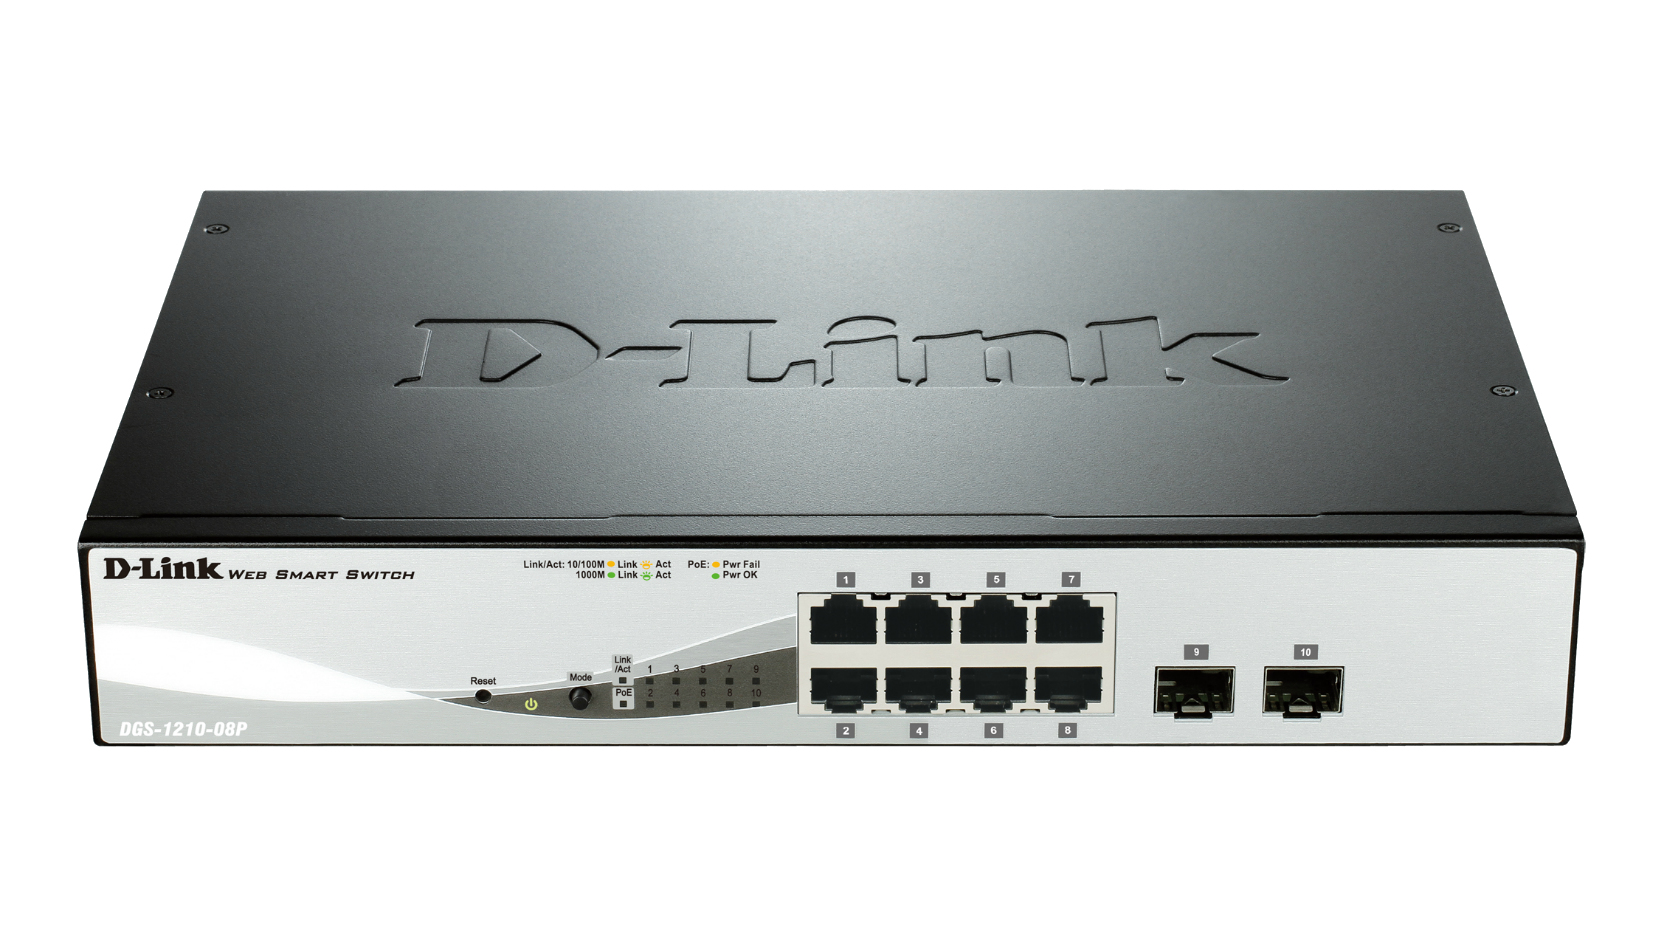 D-LINK DGS-1210-08P L2 GIGABIT ETHERNET POWER OVER (POE) BLACK NETWORK SWITCH